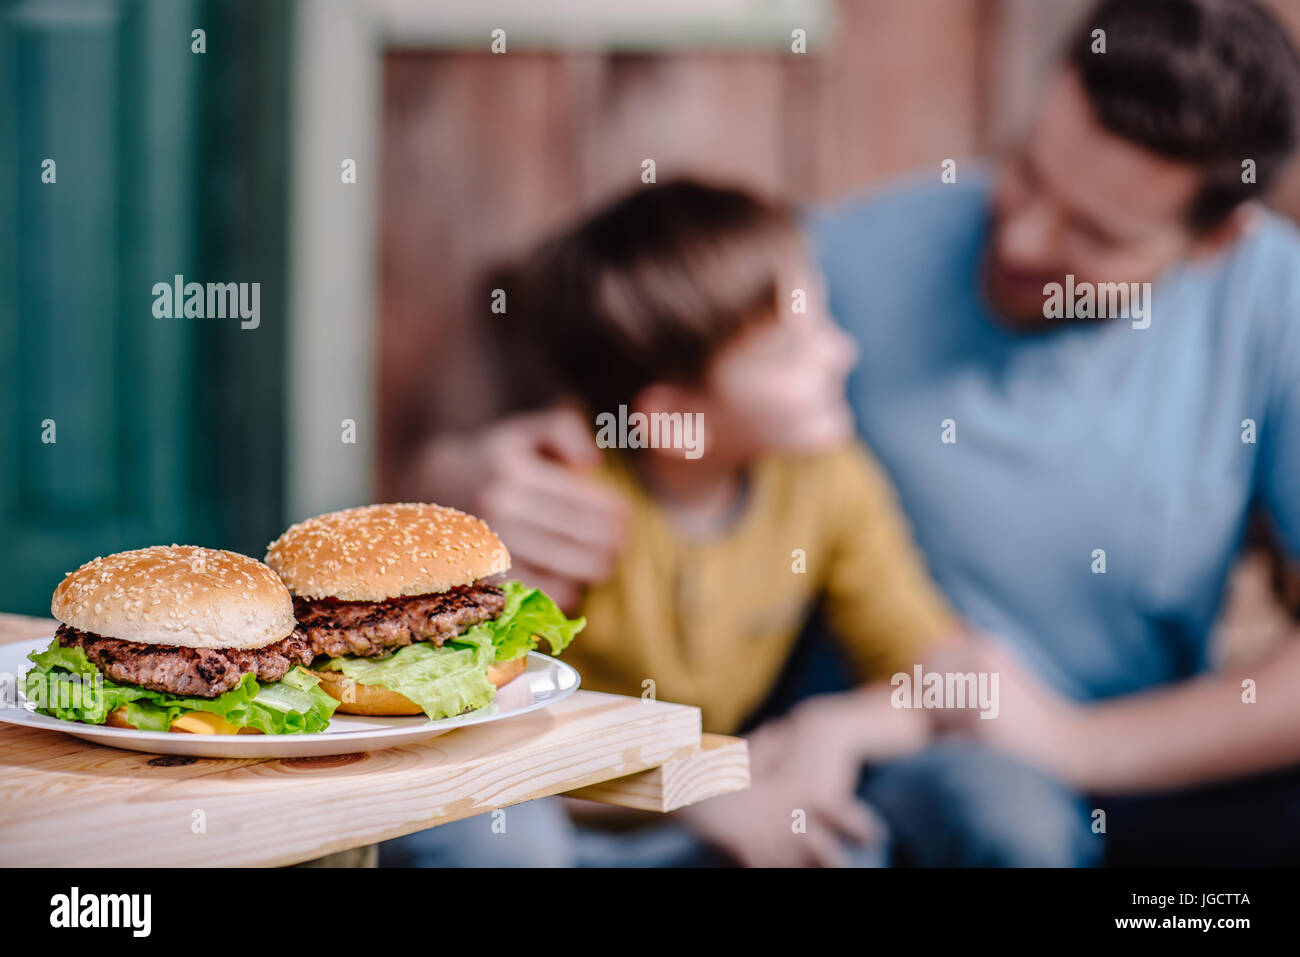 close up view of homemade burgers on plate with family behind - Stock Image